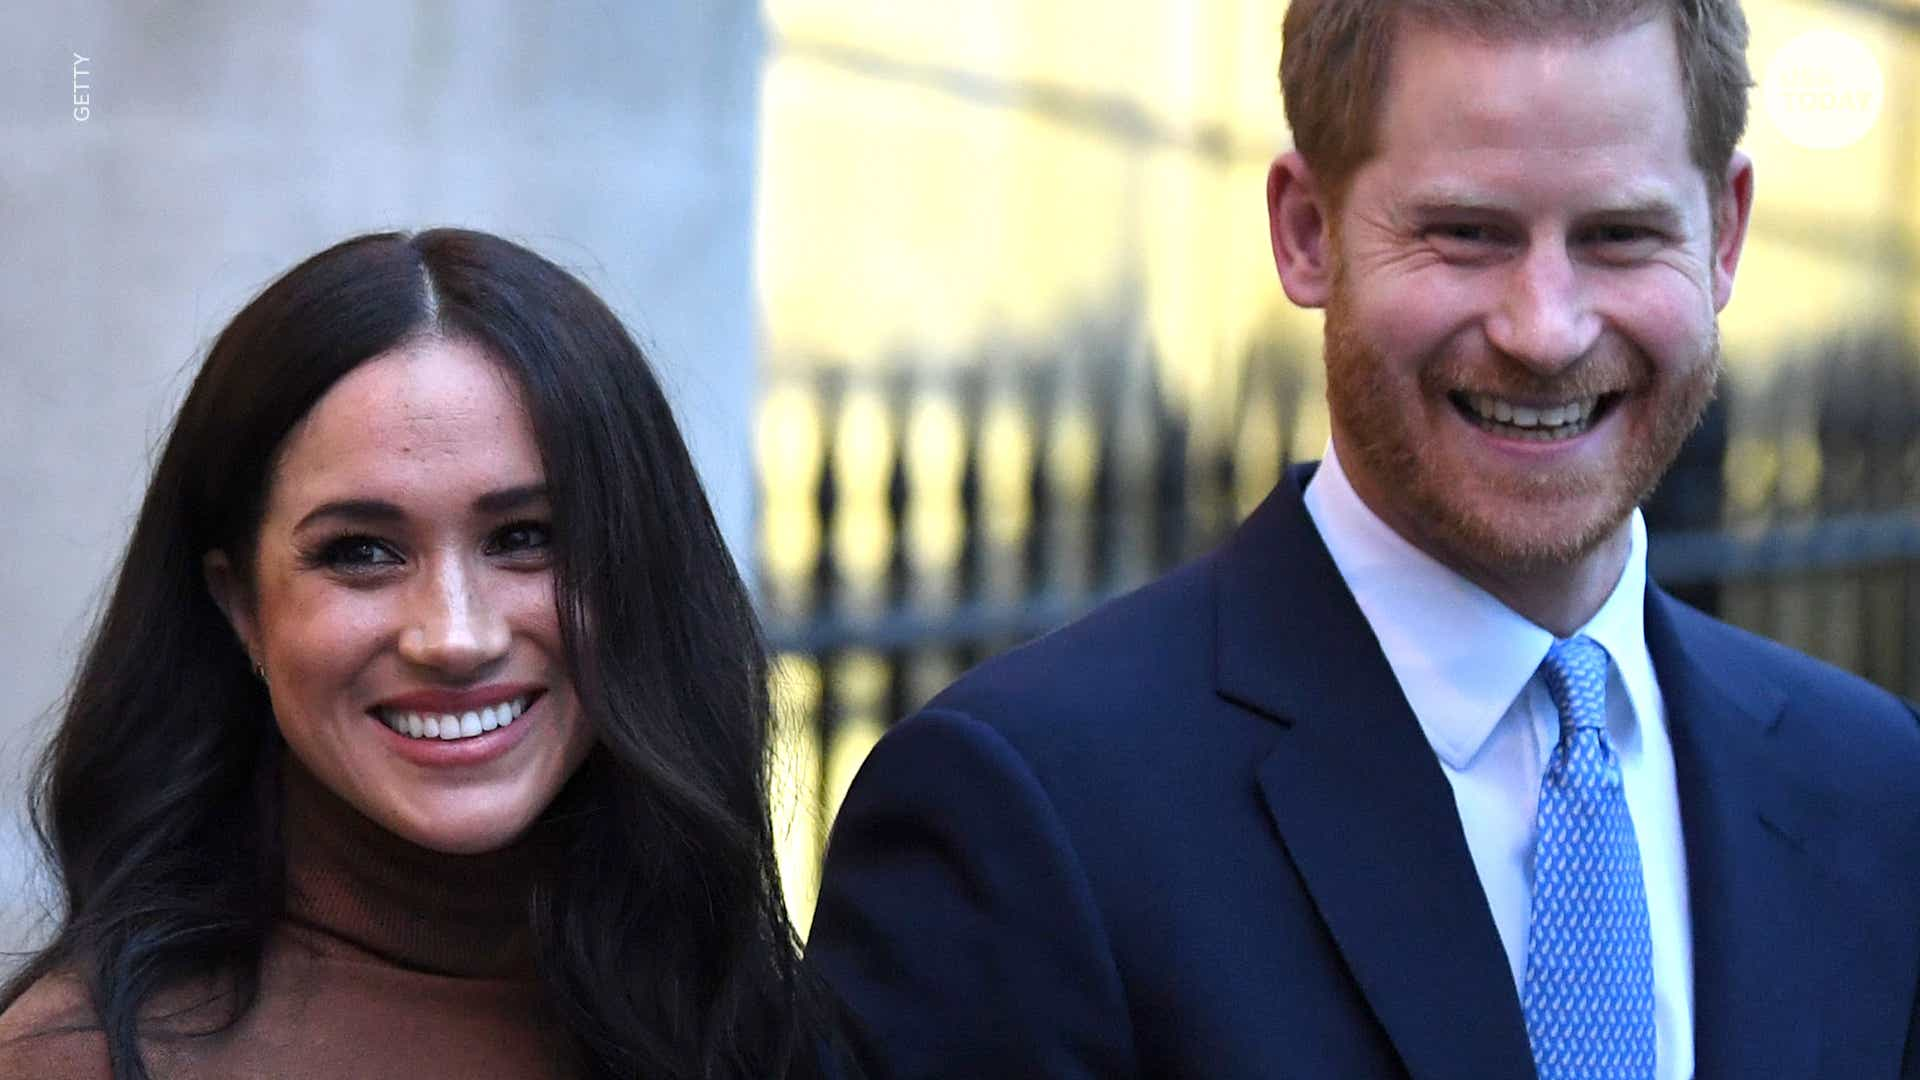 Andrea Bordeaux Nude harry & meghan: 'we're stepping back' as senior royals